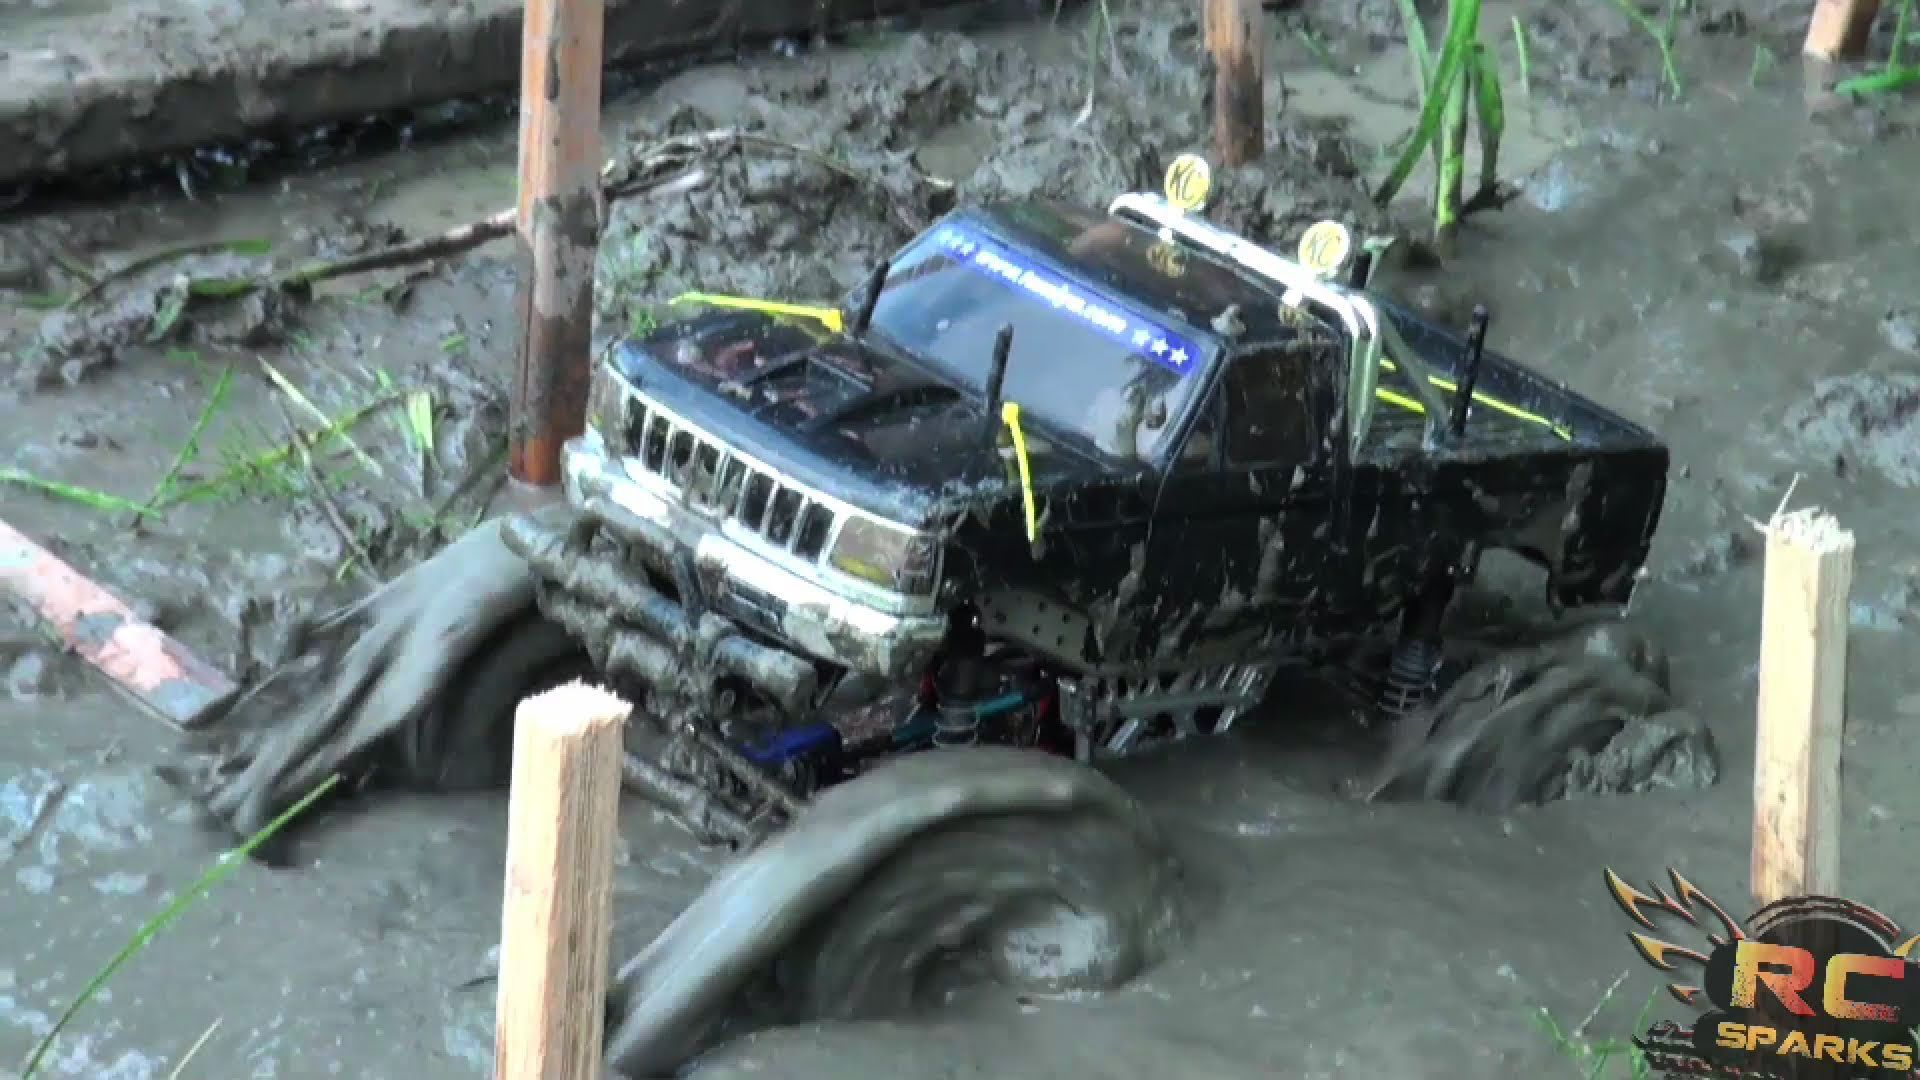 Rc Trucks 4X4 Mudding, Rc Trucks Mudding 4x4 For Sale, Rc